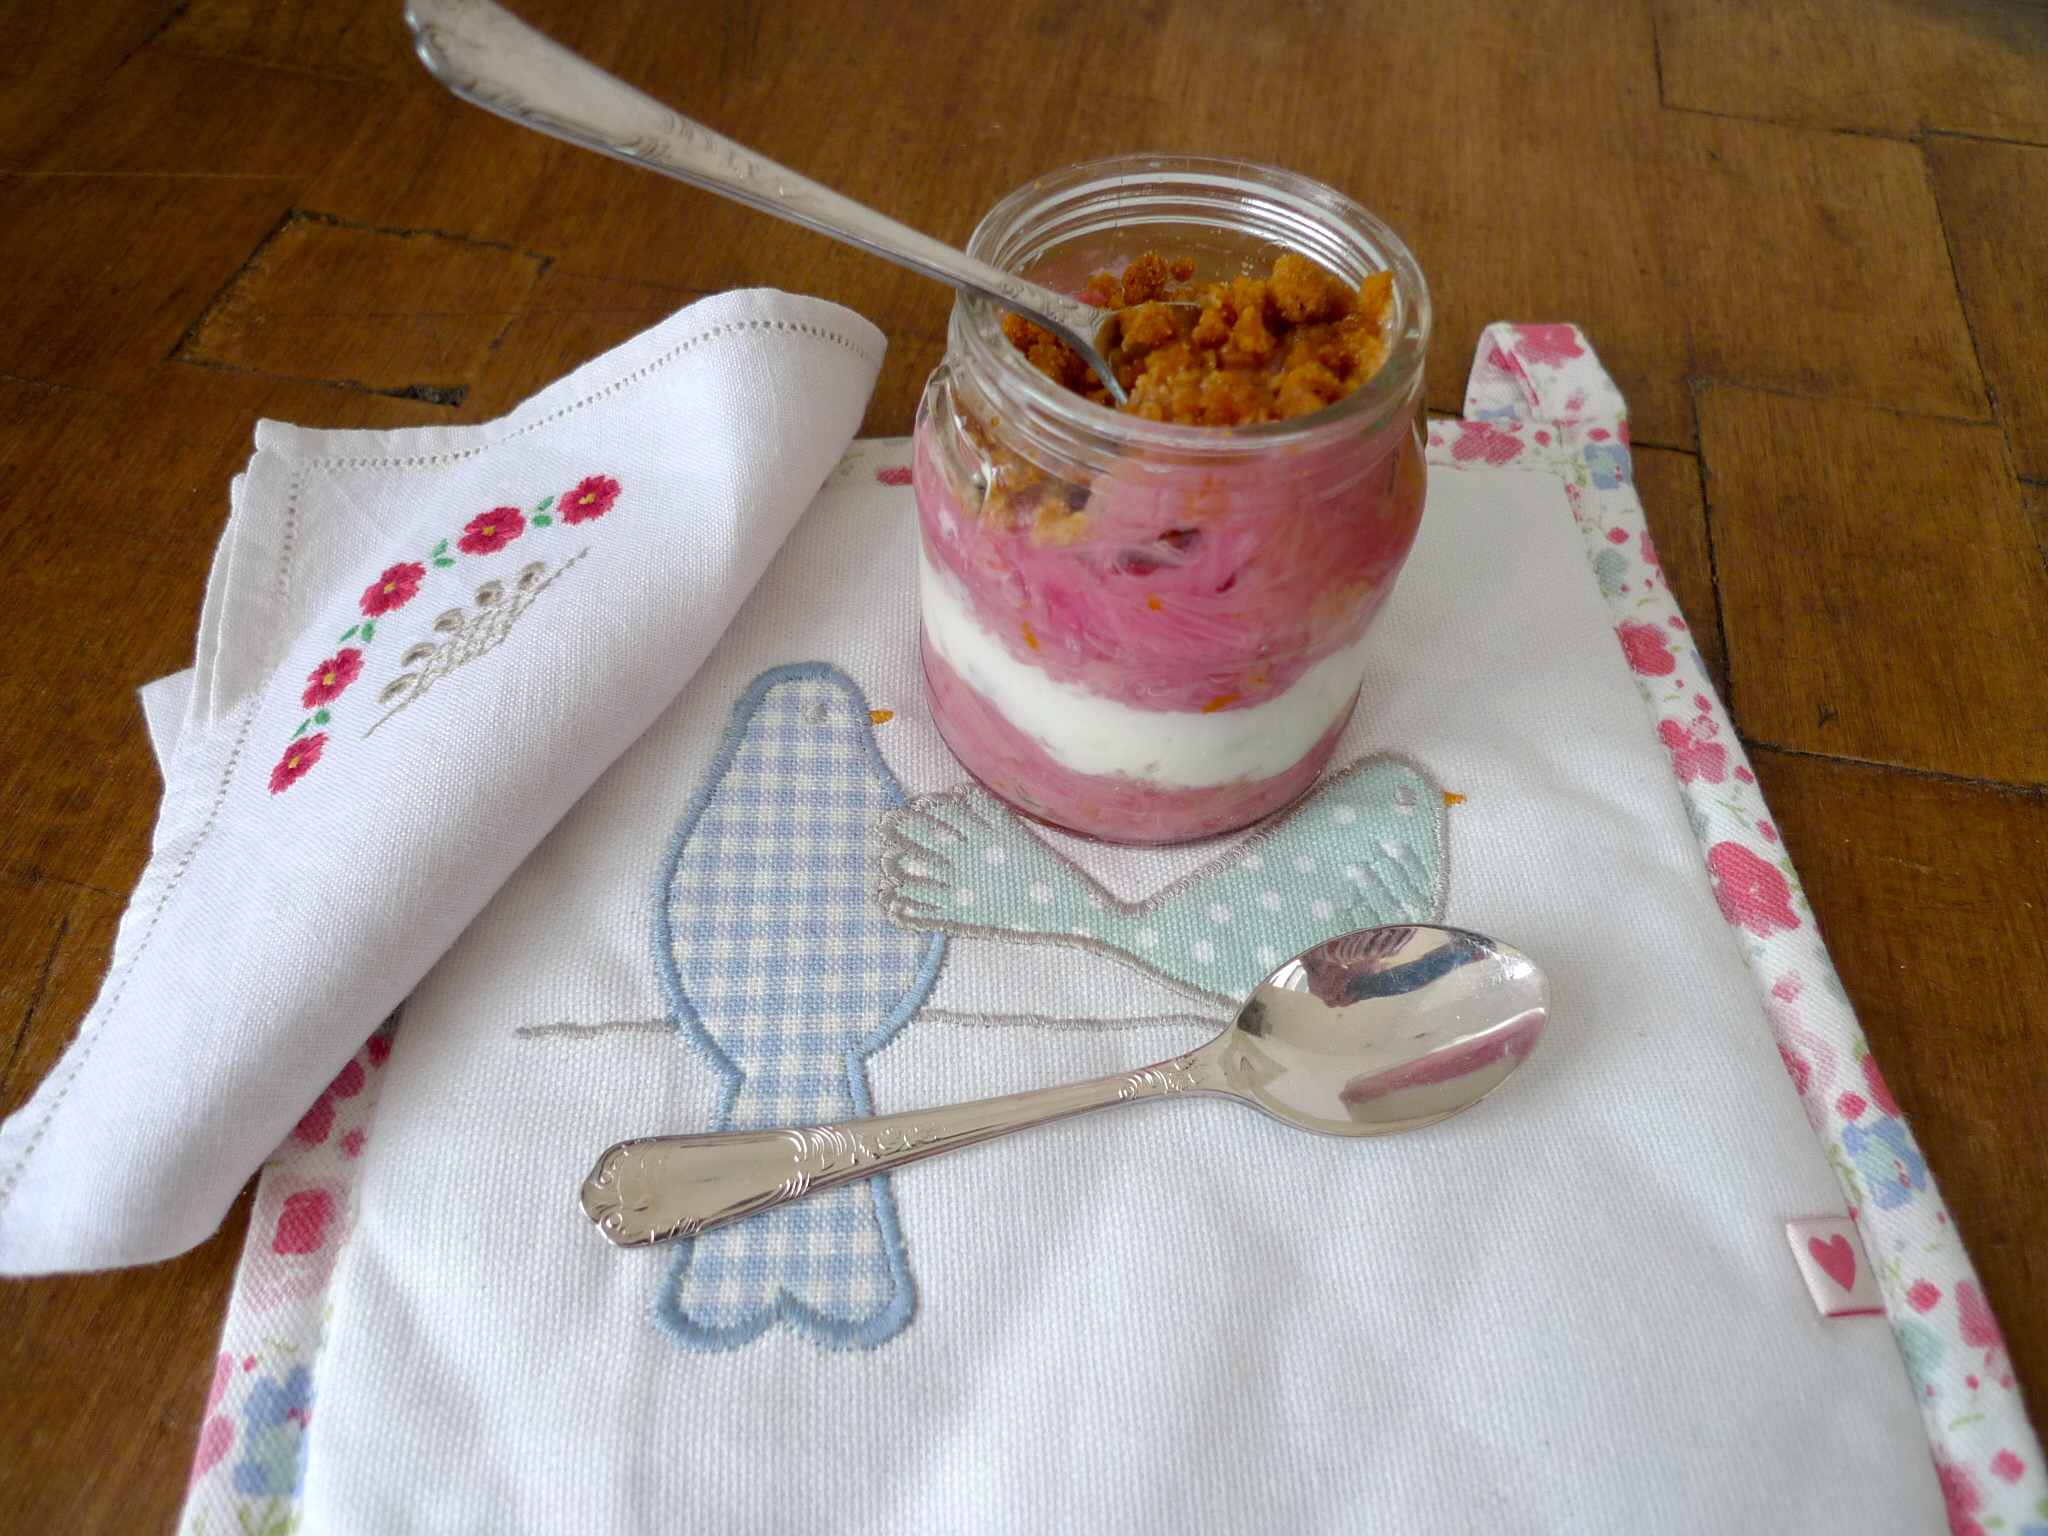 Rhubarb Pudding in a Jar